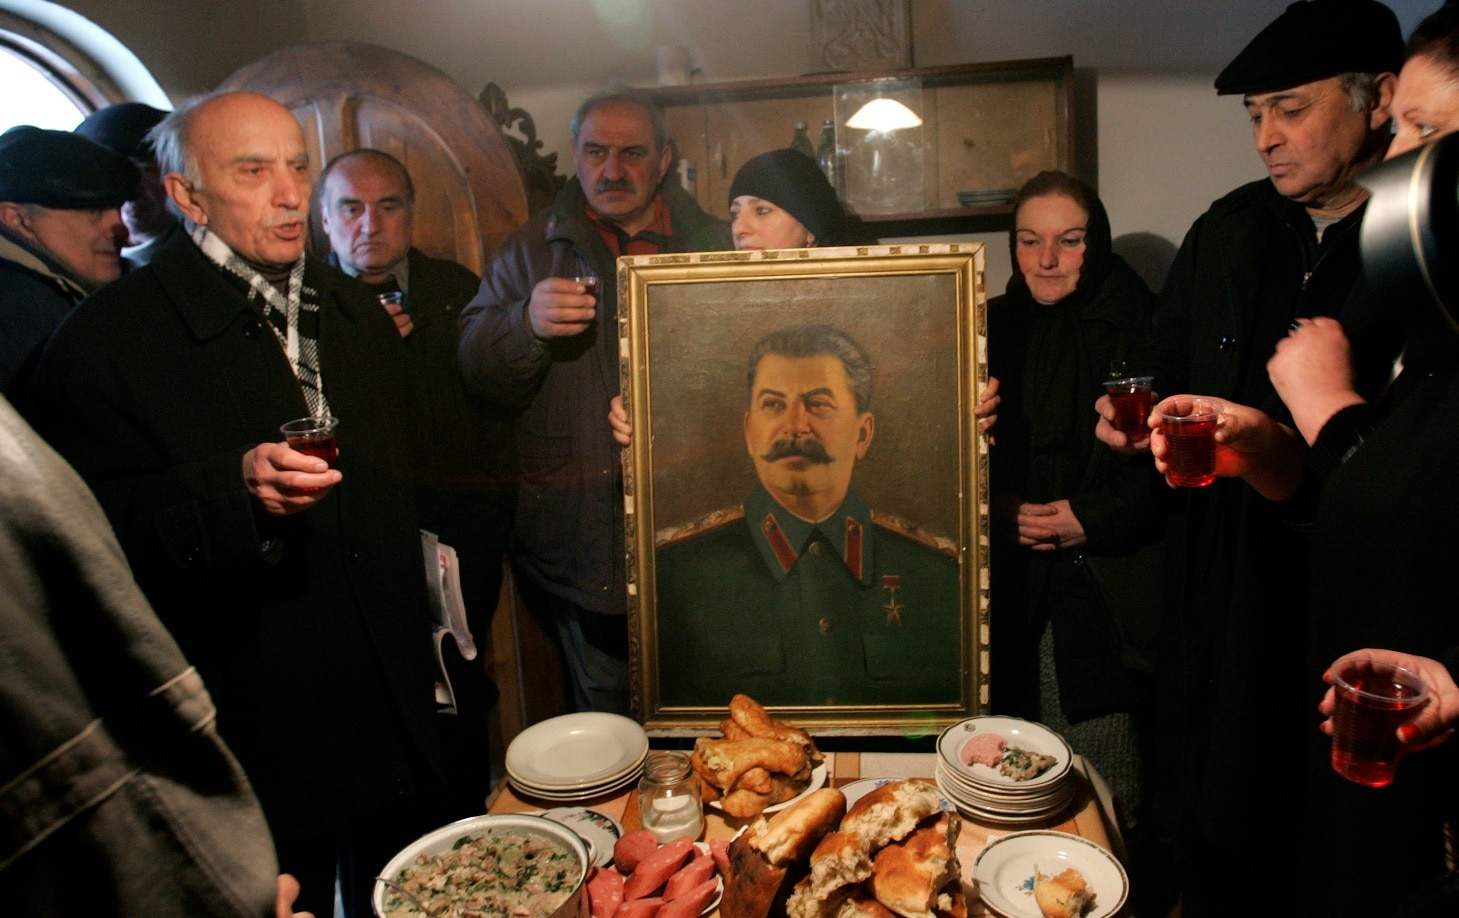 File: People toast, standing around a portrait of Soviet dictator Josef Stalin, after a memorial service at Stalin's hometown of Gori